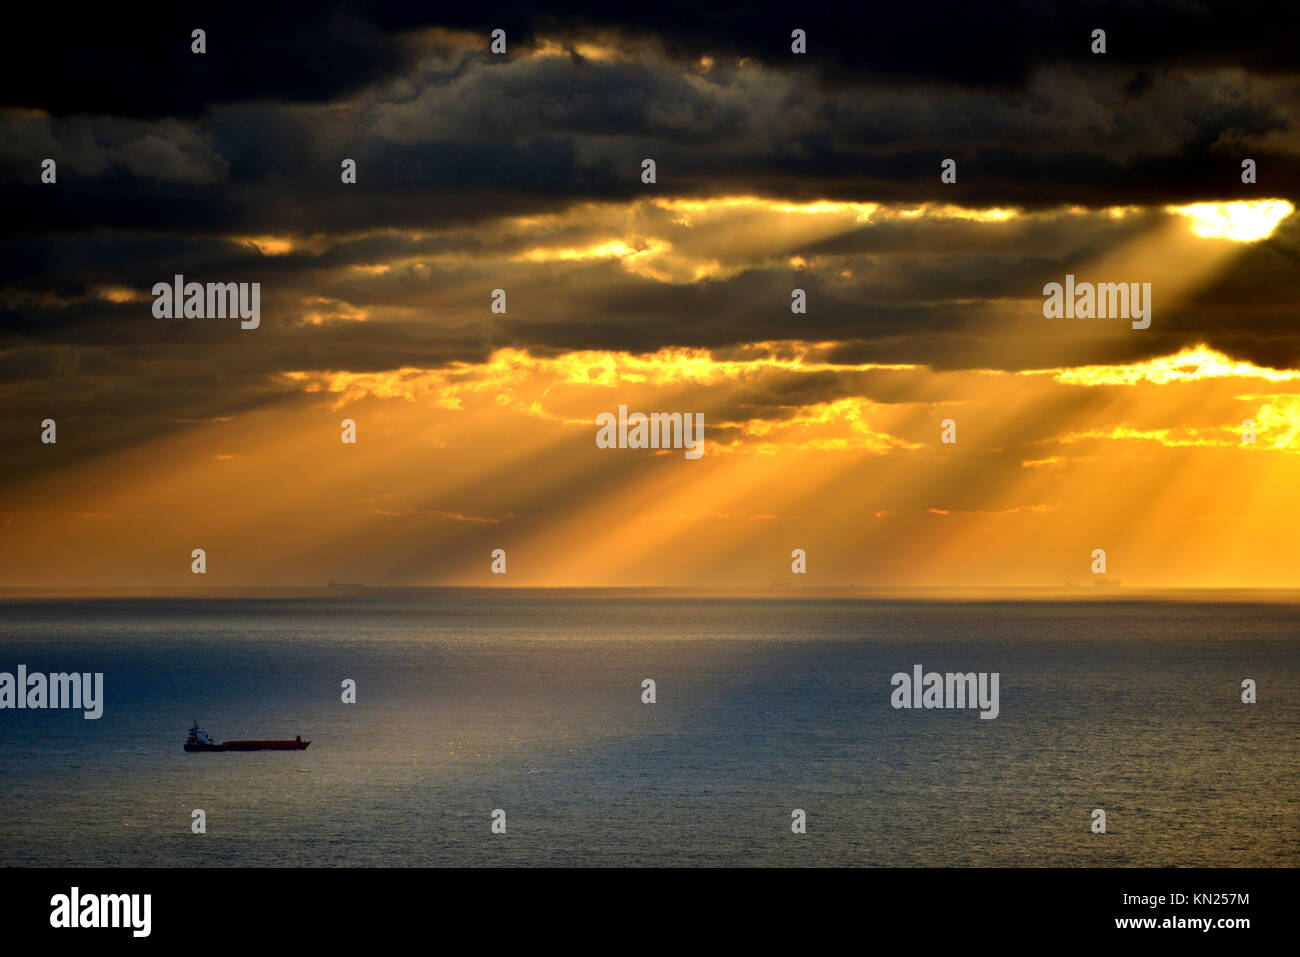 Container ship lit by rays of the setting sun, English channel. - Stock Image